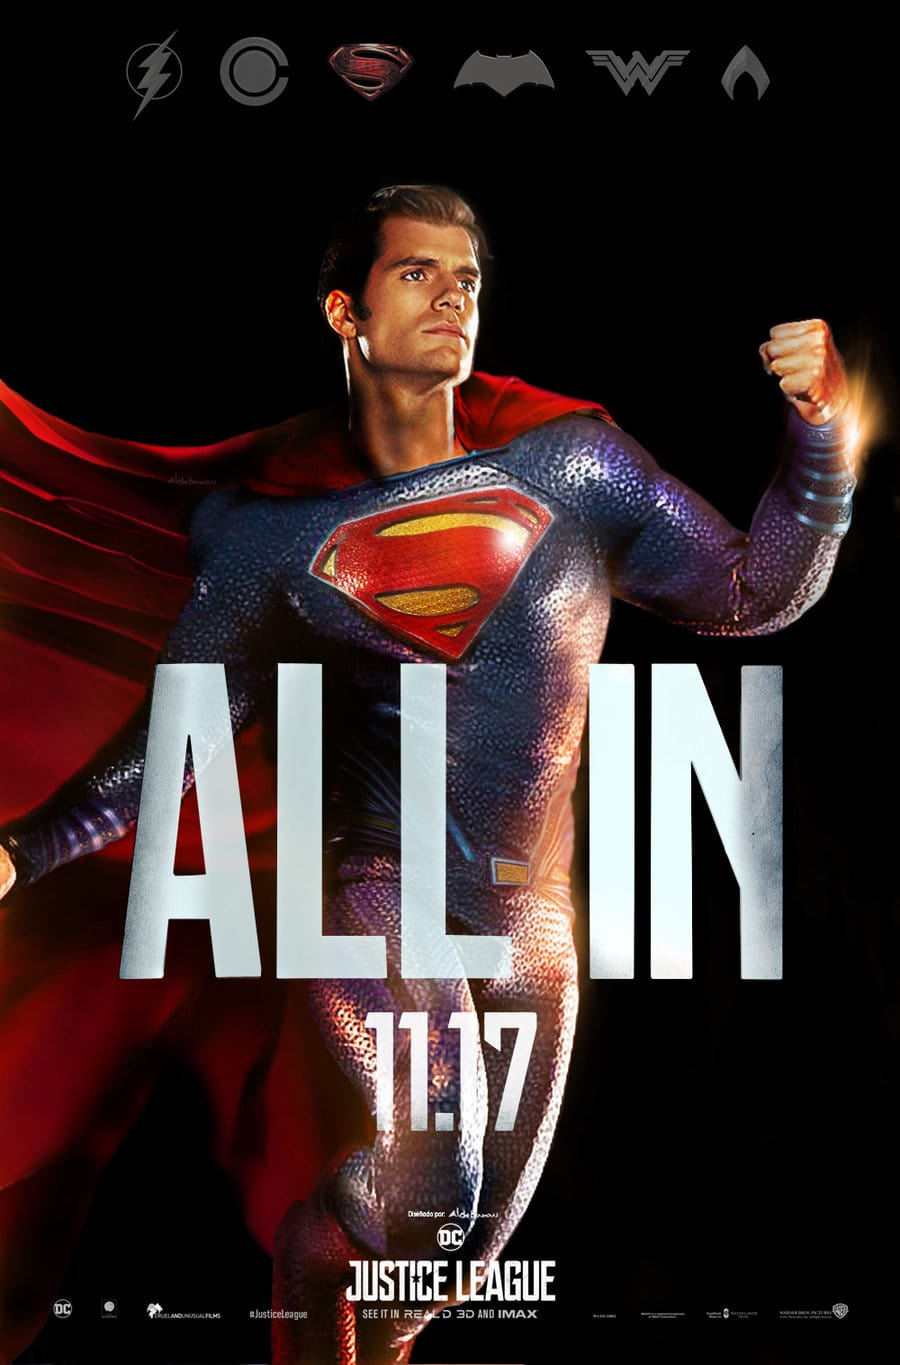 Justice League - All In Poster - Superman